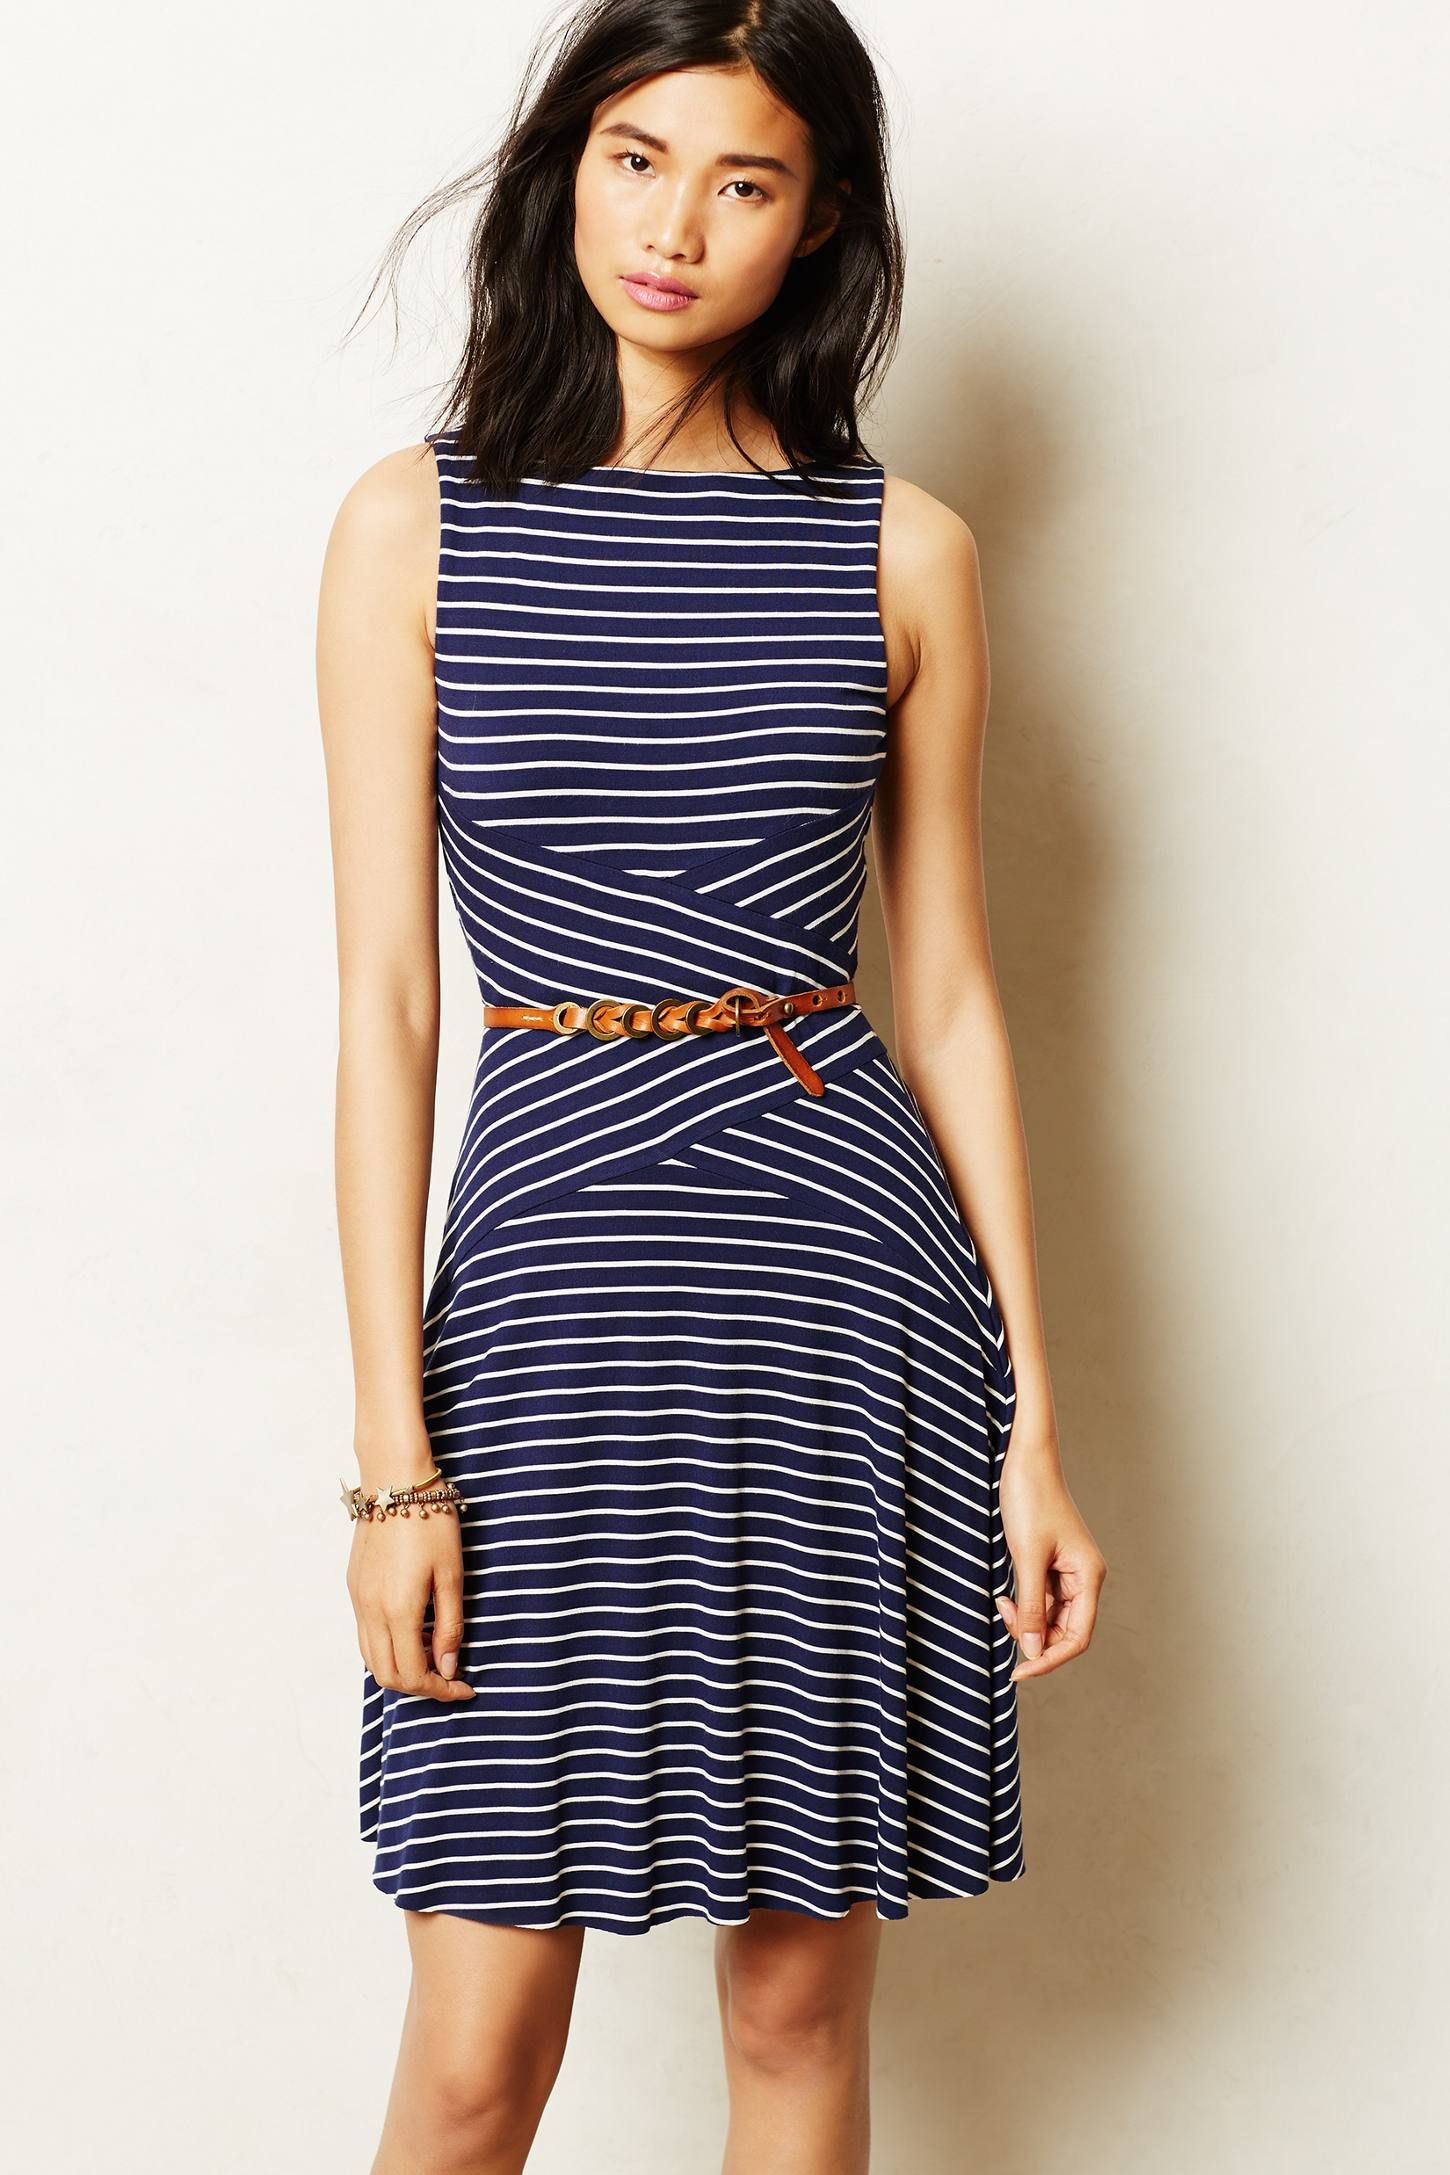 Torres Dress - anthropologie.com. | clothes | Pinterest | Vestiditos ...